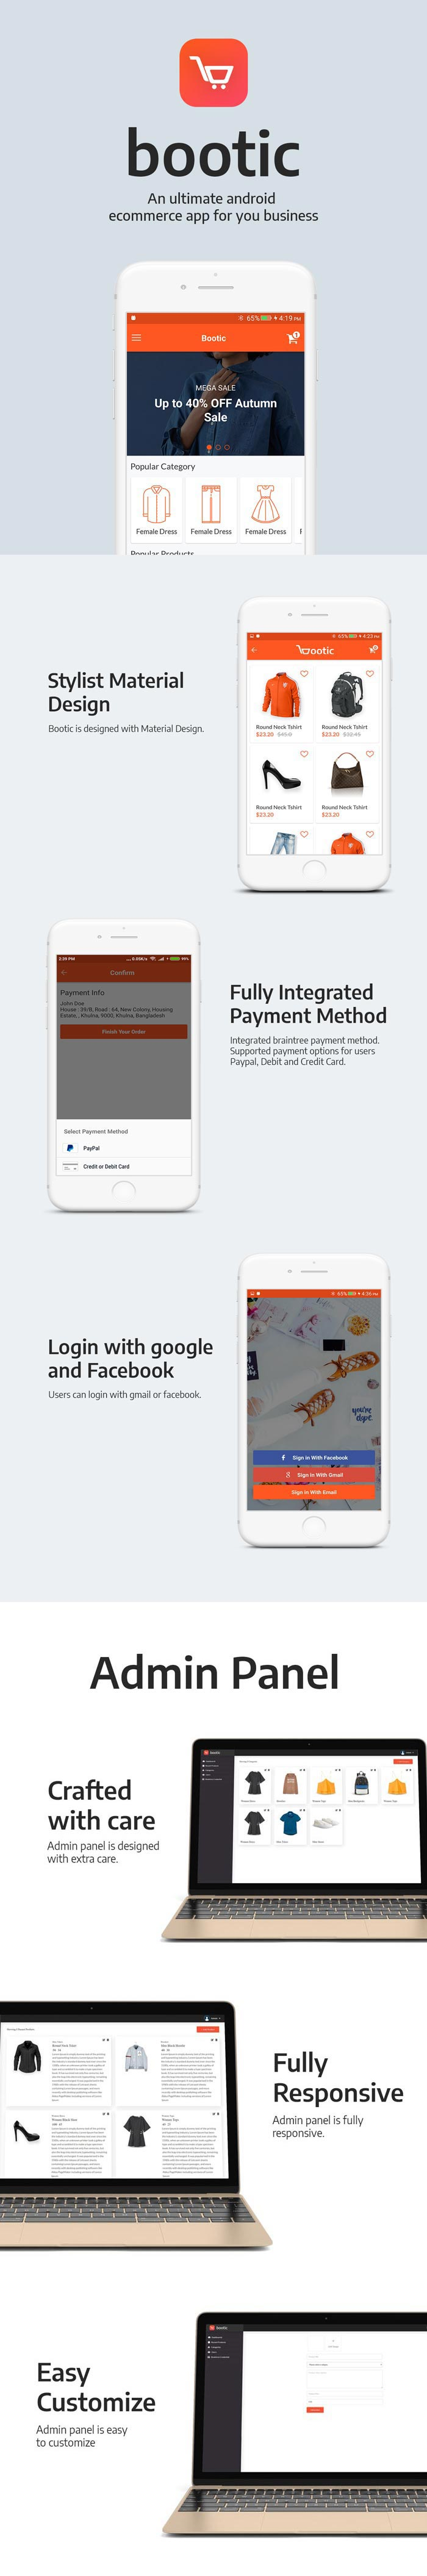 Bootic – An android eCommerce app with admin panel (Full